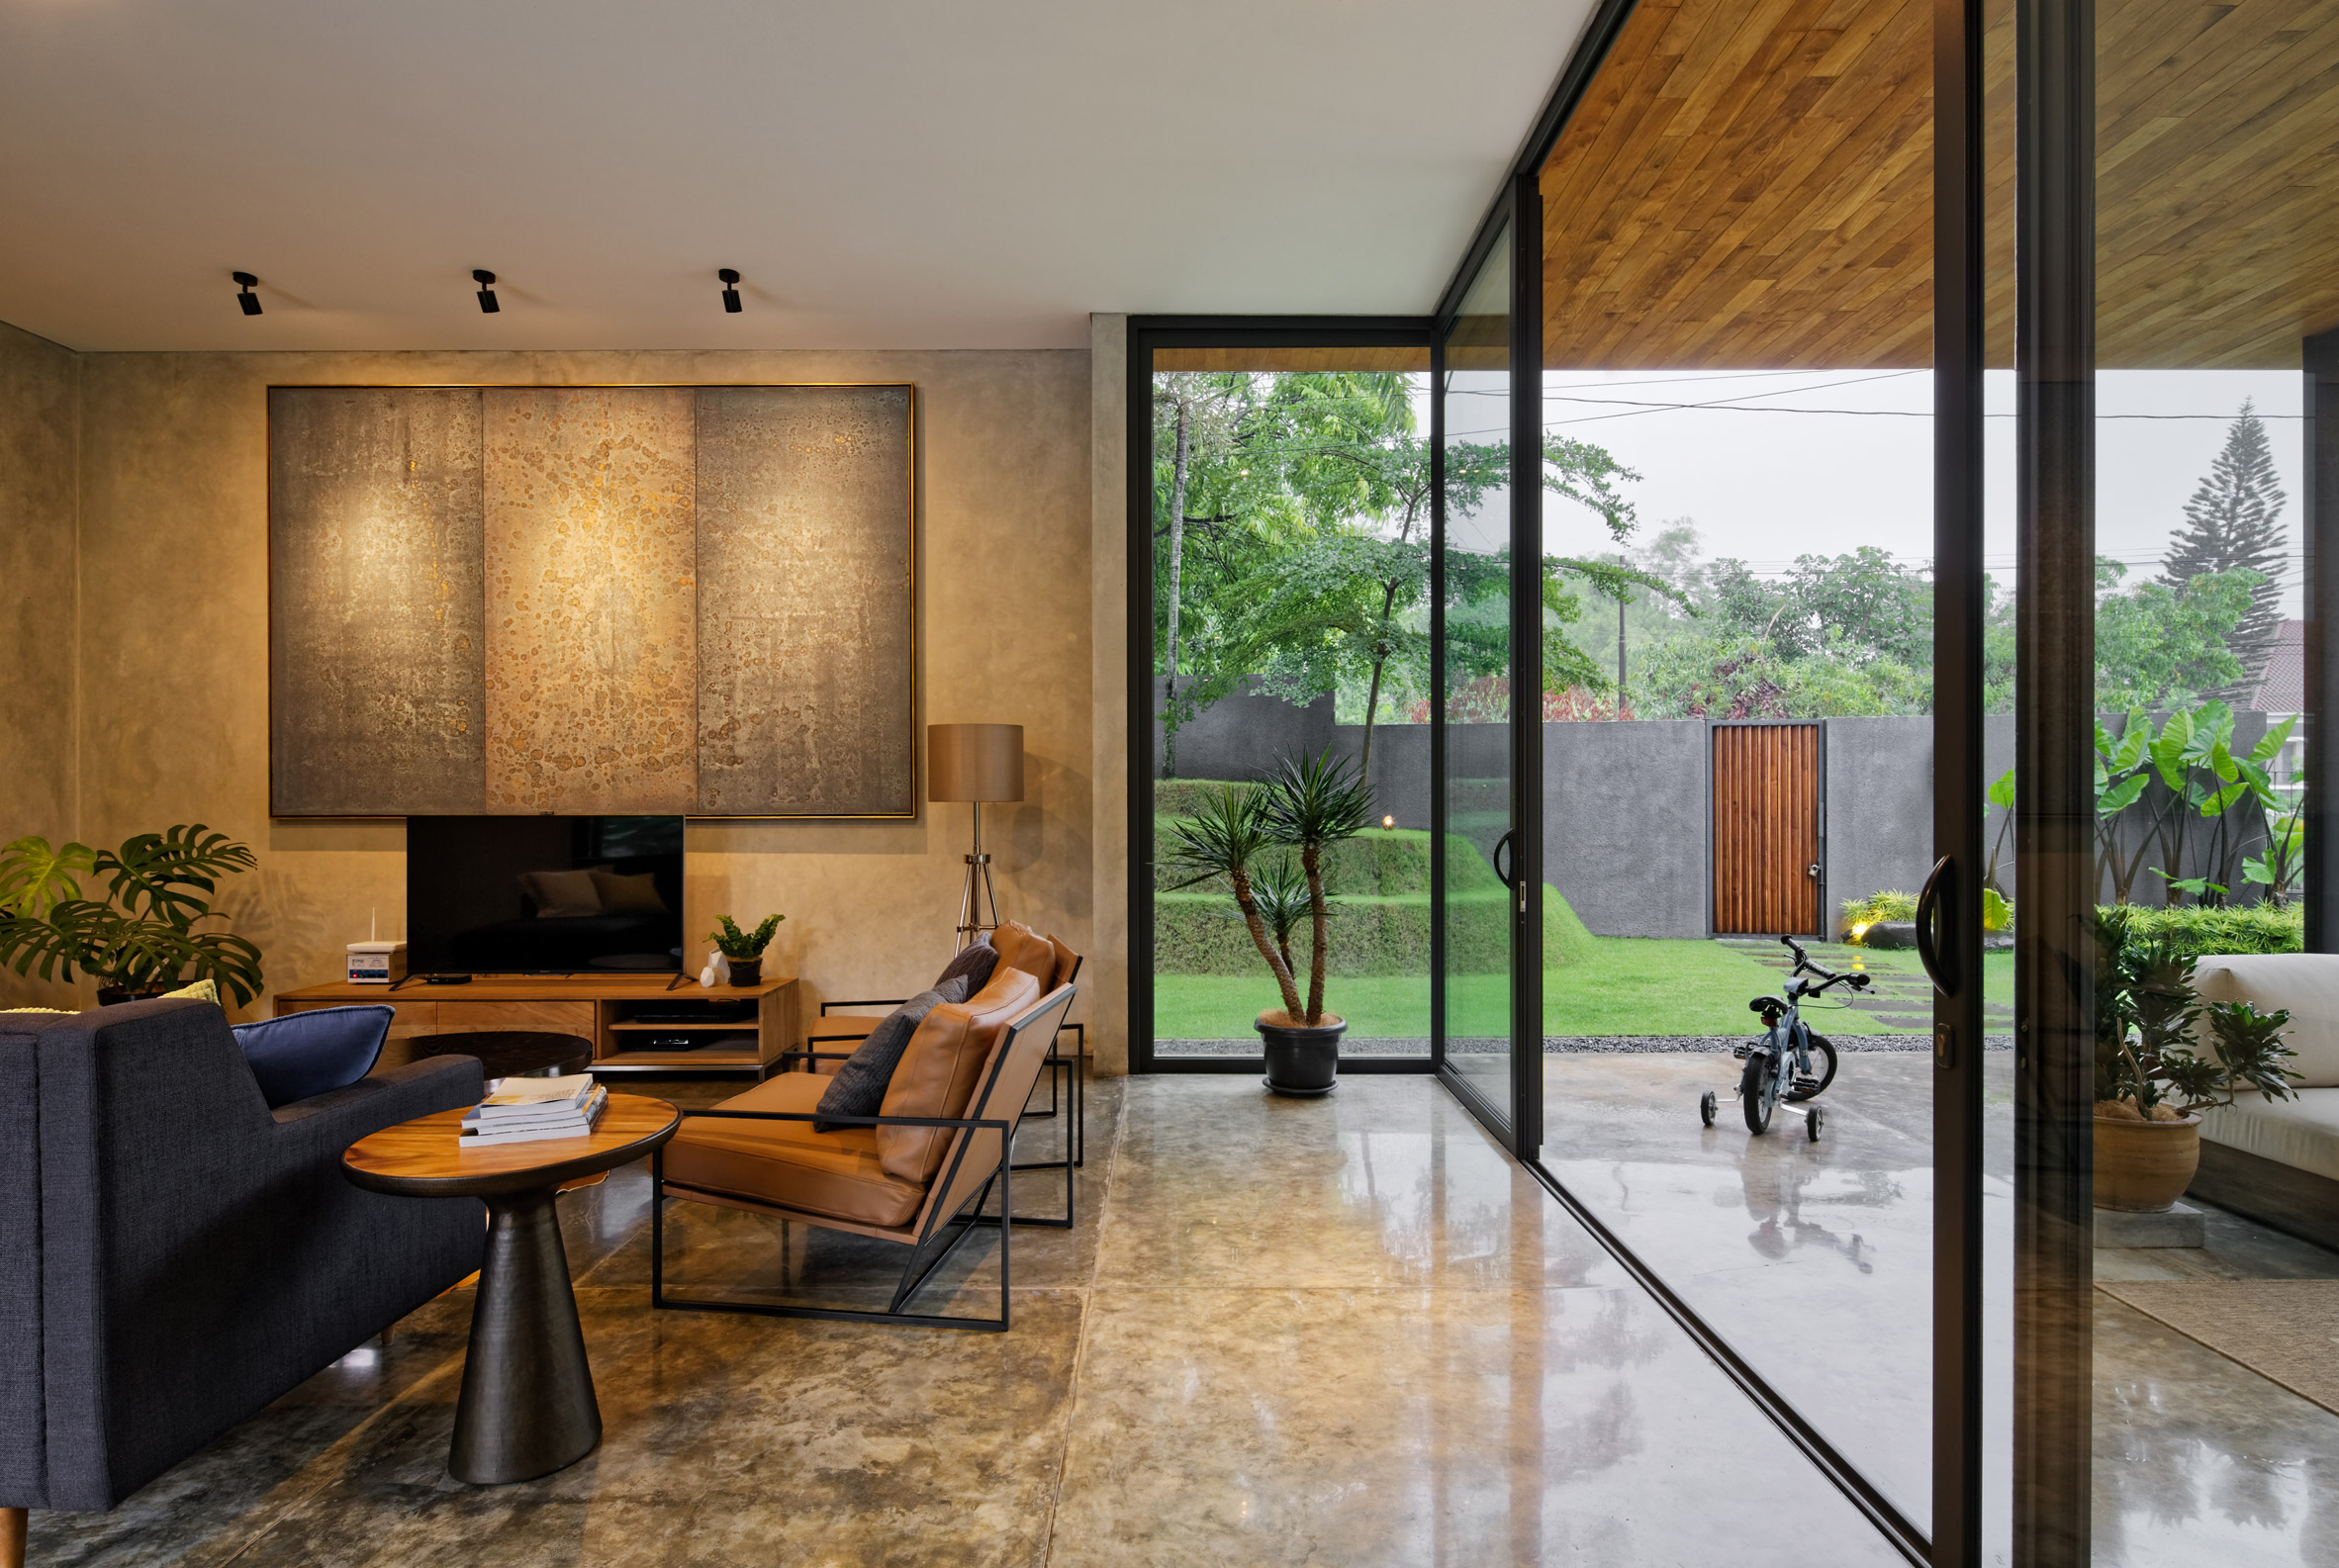 house-inside-outside-tamara-wibowo-architecture-residential-indonesia_dezeen_2364_col_1.jpg